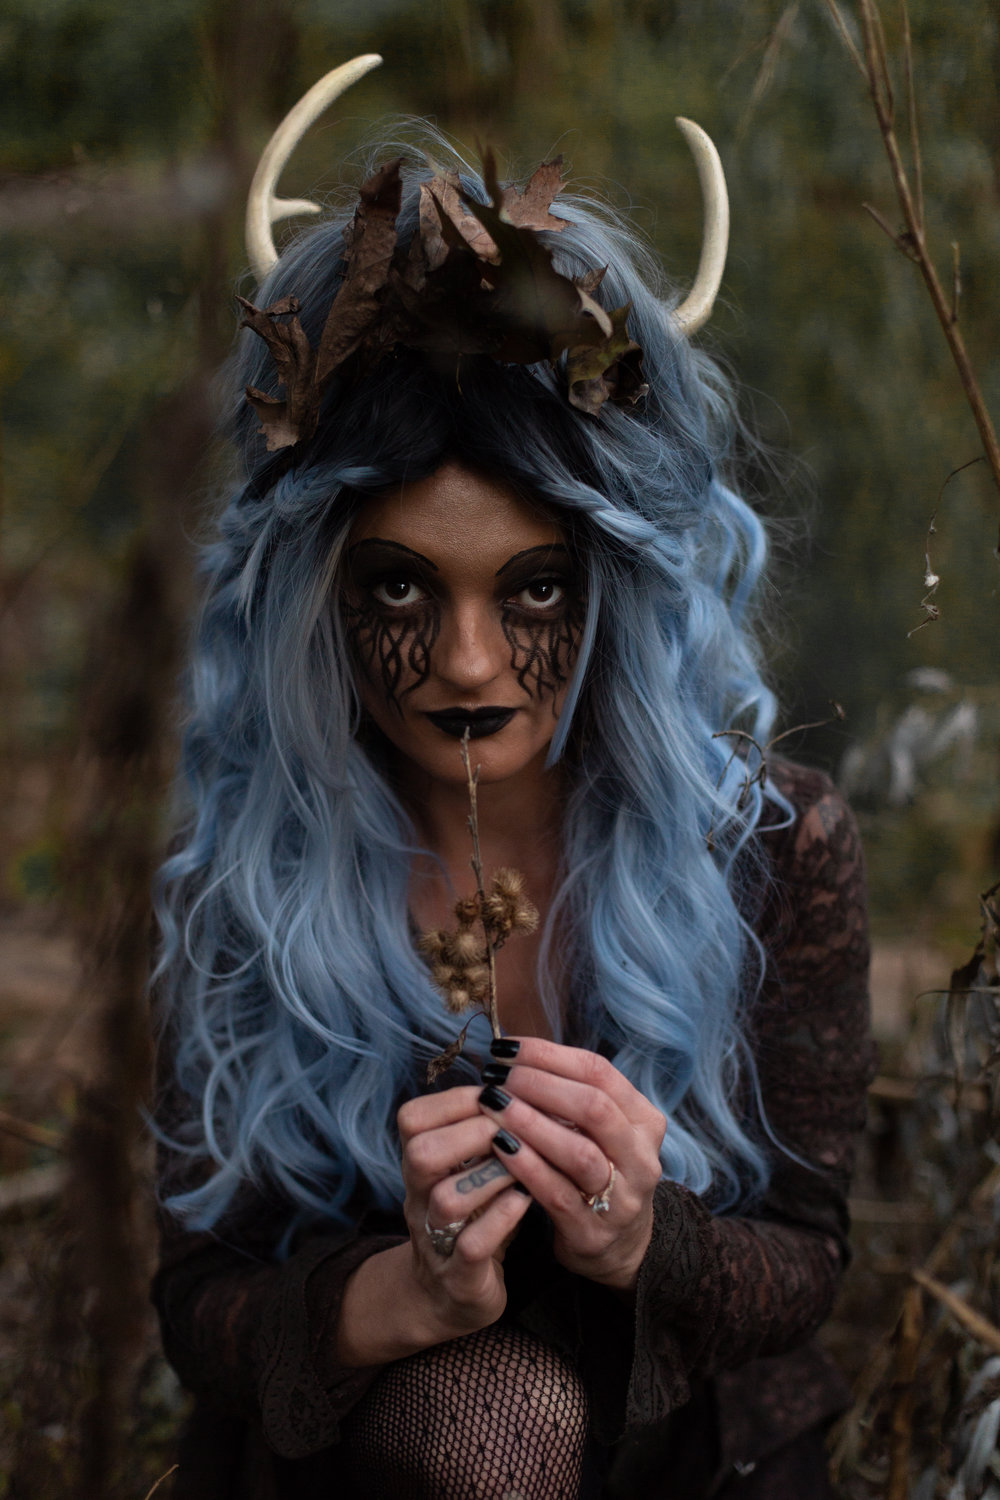 Woman with blue hair and antlers in Ridgewood, New Jersey for Halloween. Photo by Laughing Heart Photography.